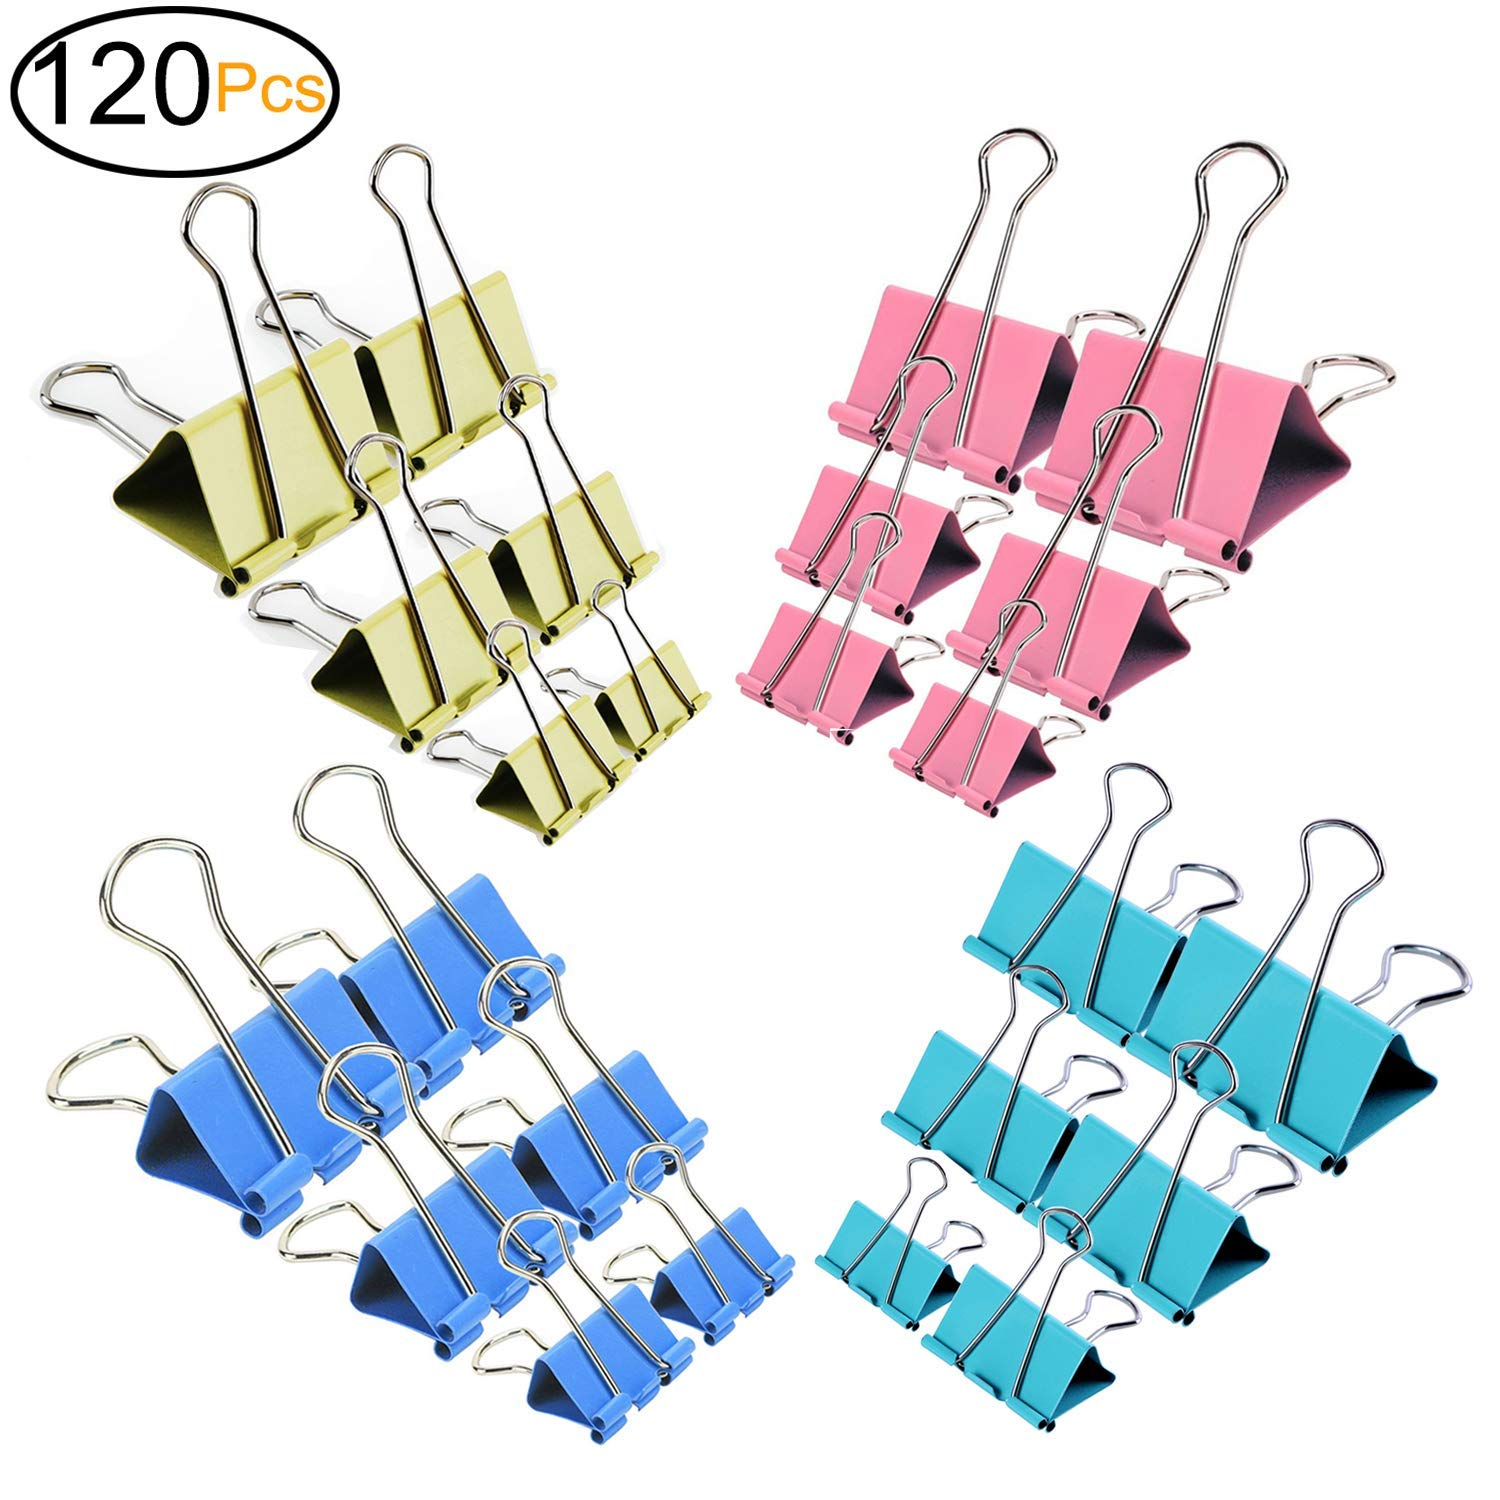 ExcelFu 120 Pcs Colored Binder Clips Paper Clamp Clips Paper Binder Assorted 6 Sizes